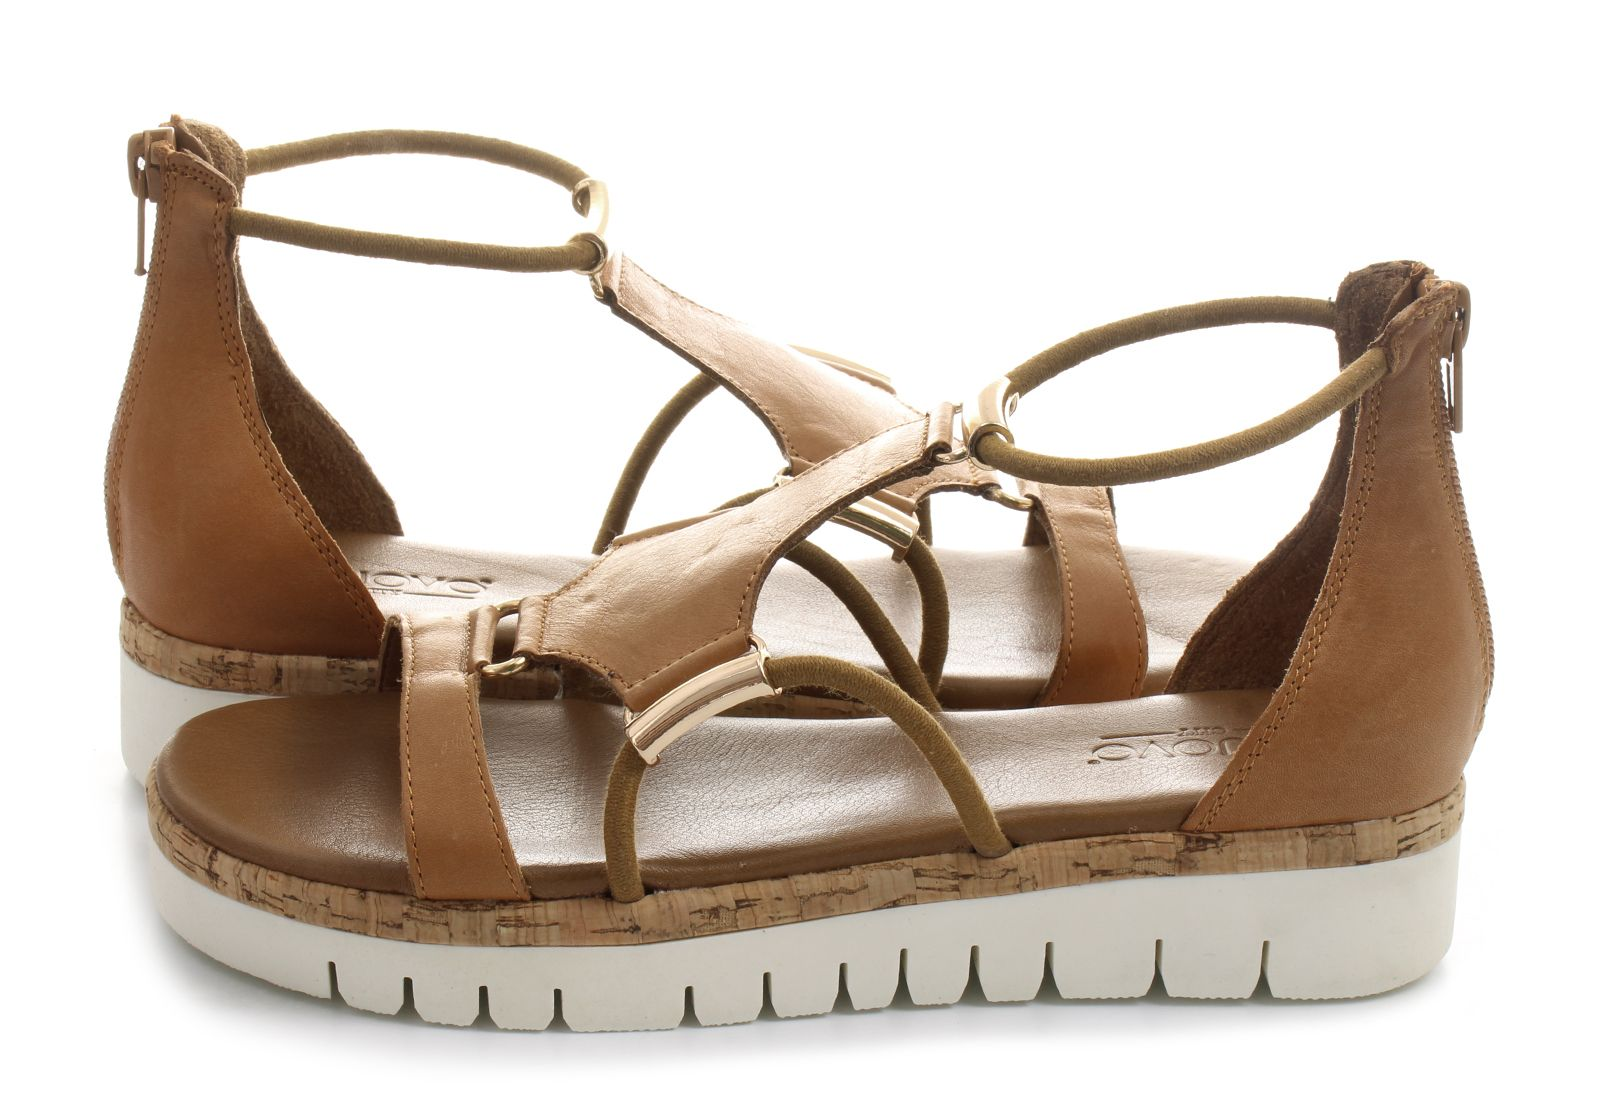 ee65c93bc36 Inuovo Sandals - 7903 - 7903-coc - Online shop for sneakers